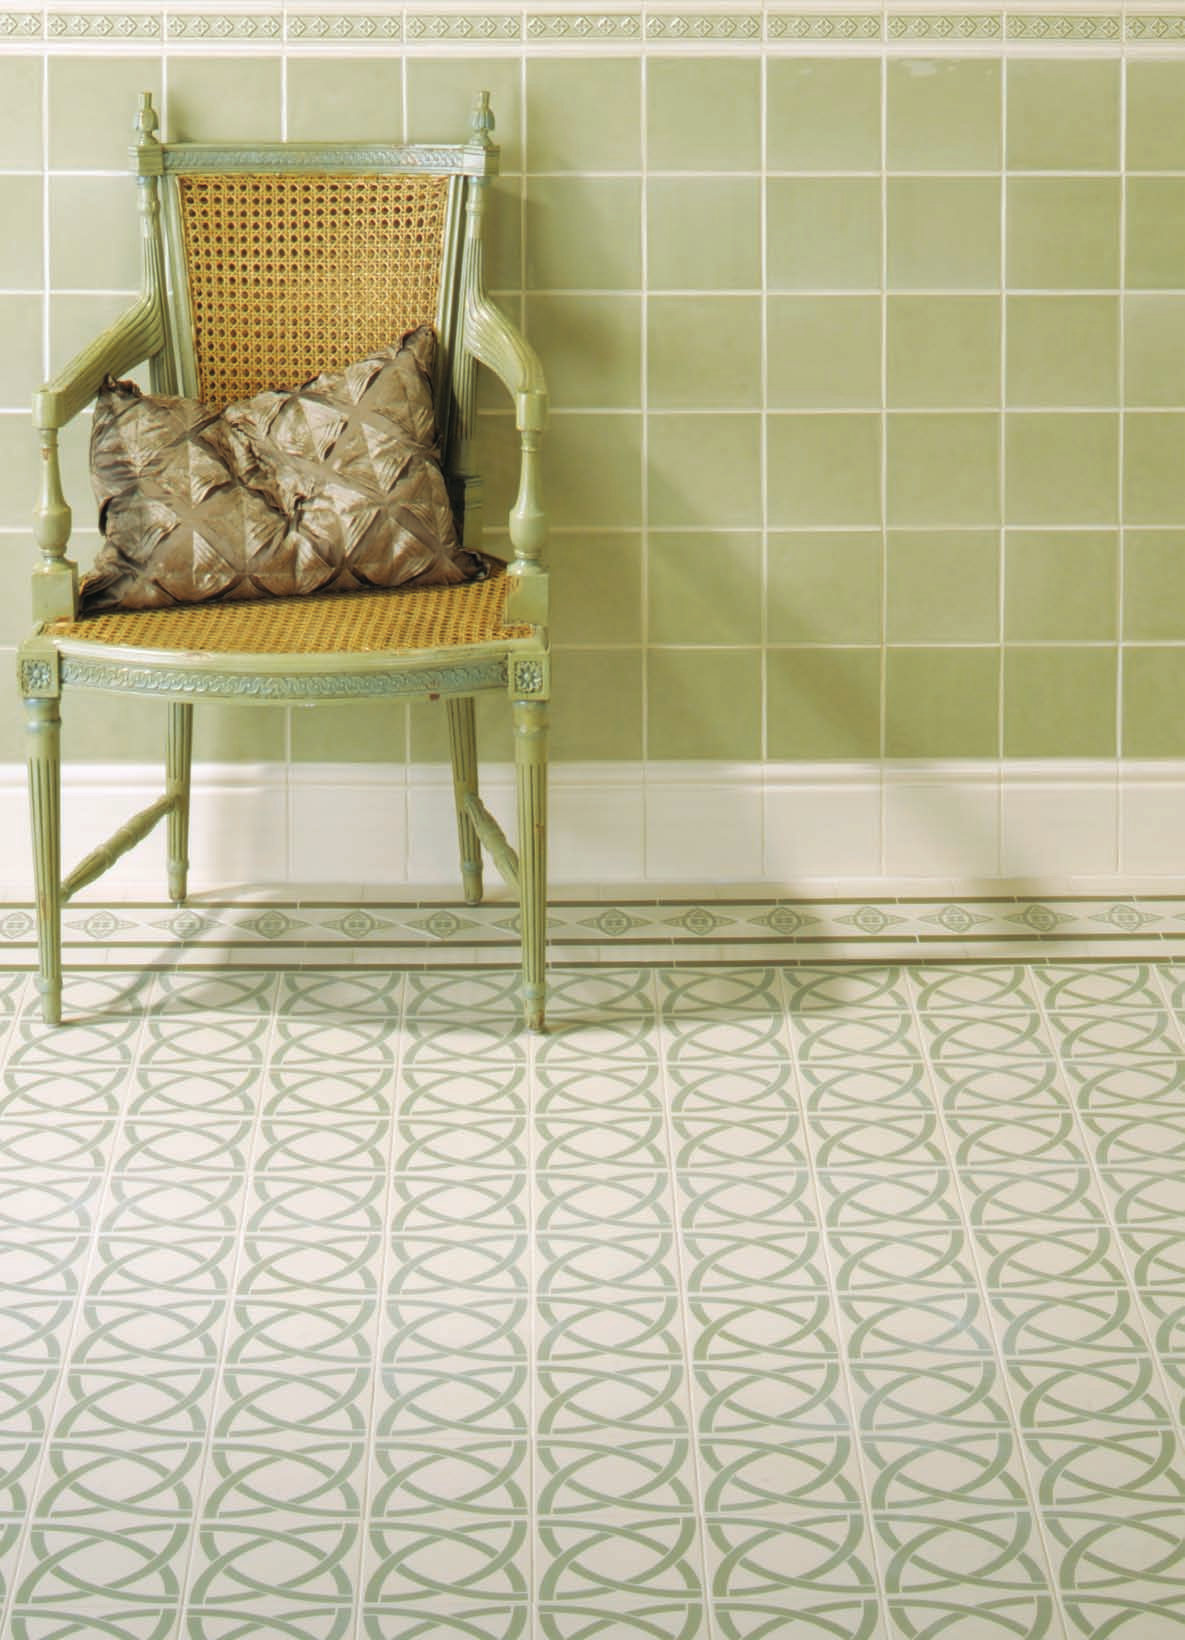 Bathroom Makeover Galway victorian floor tiles dublin pattern with galway border in pale